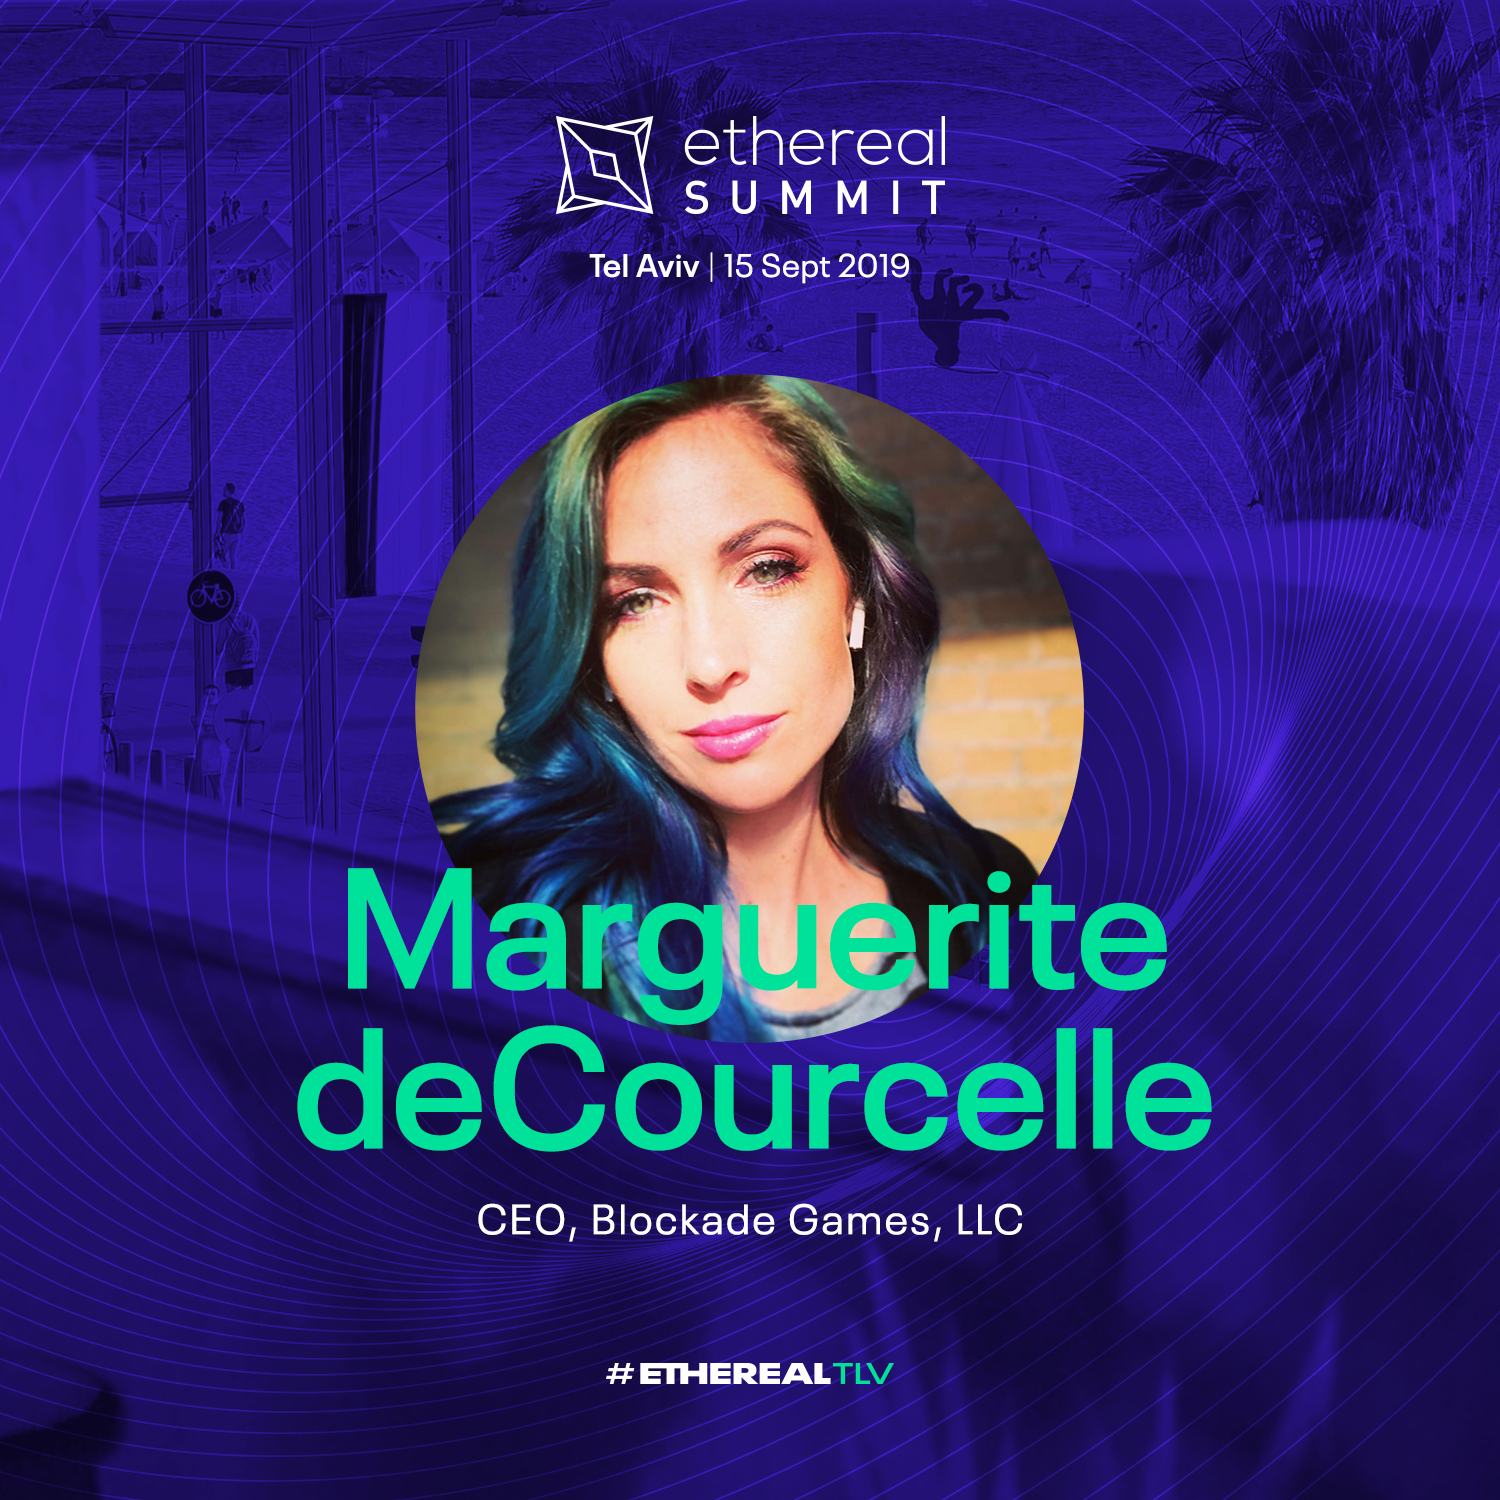 ethereal-tlv-2019-speaker-cards-square-Marguerite-deCourcelle.png